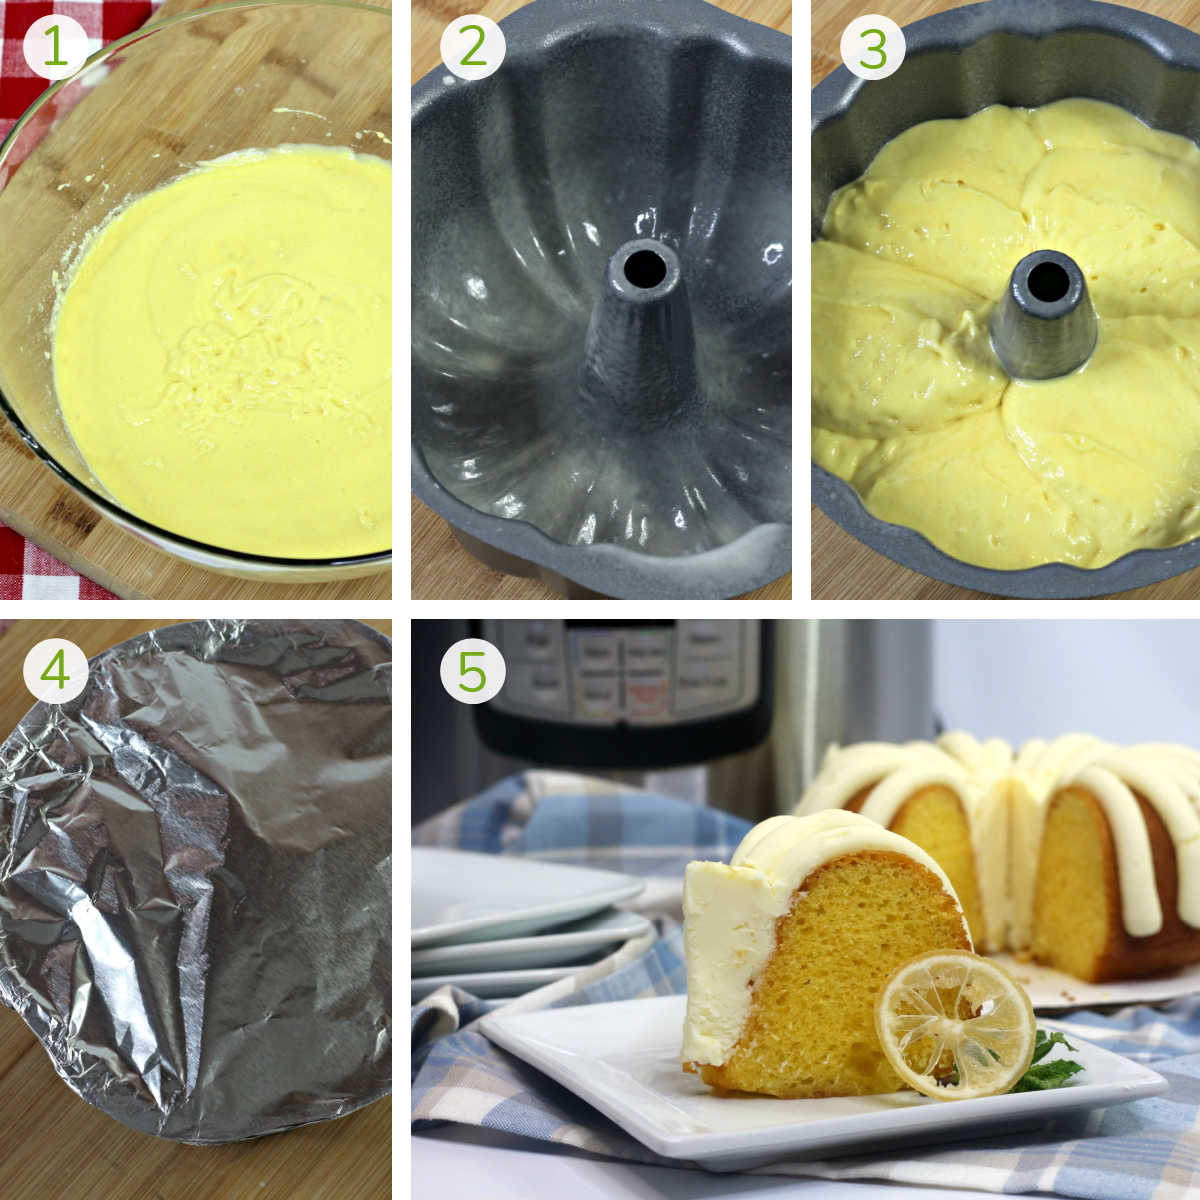 simple steps showing making the batter, adding it to the bundt pan, covering and serving